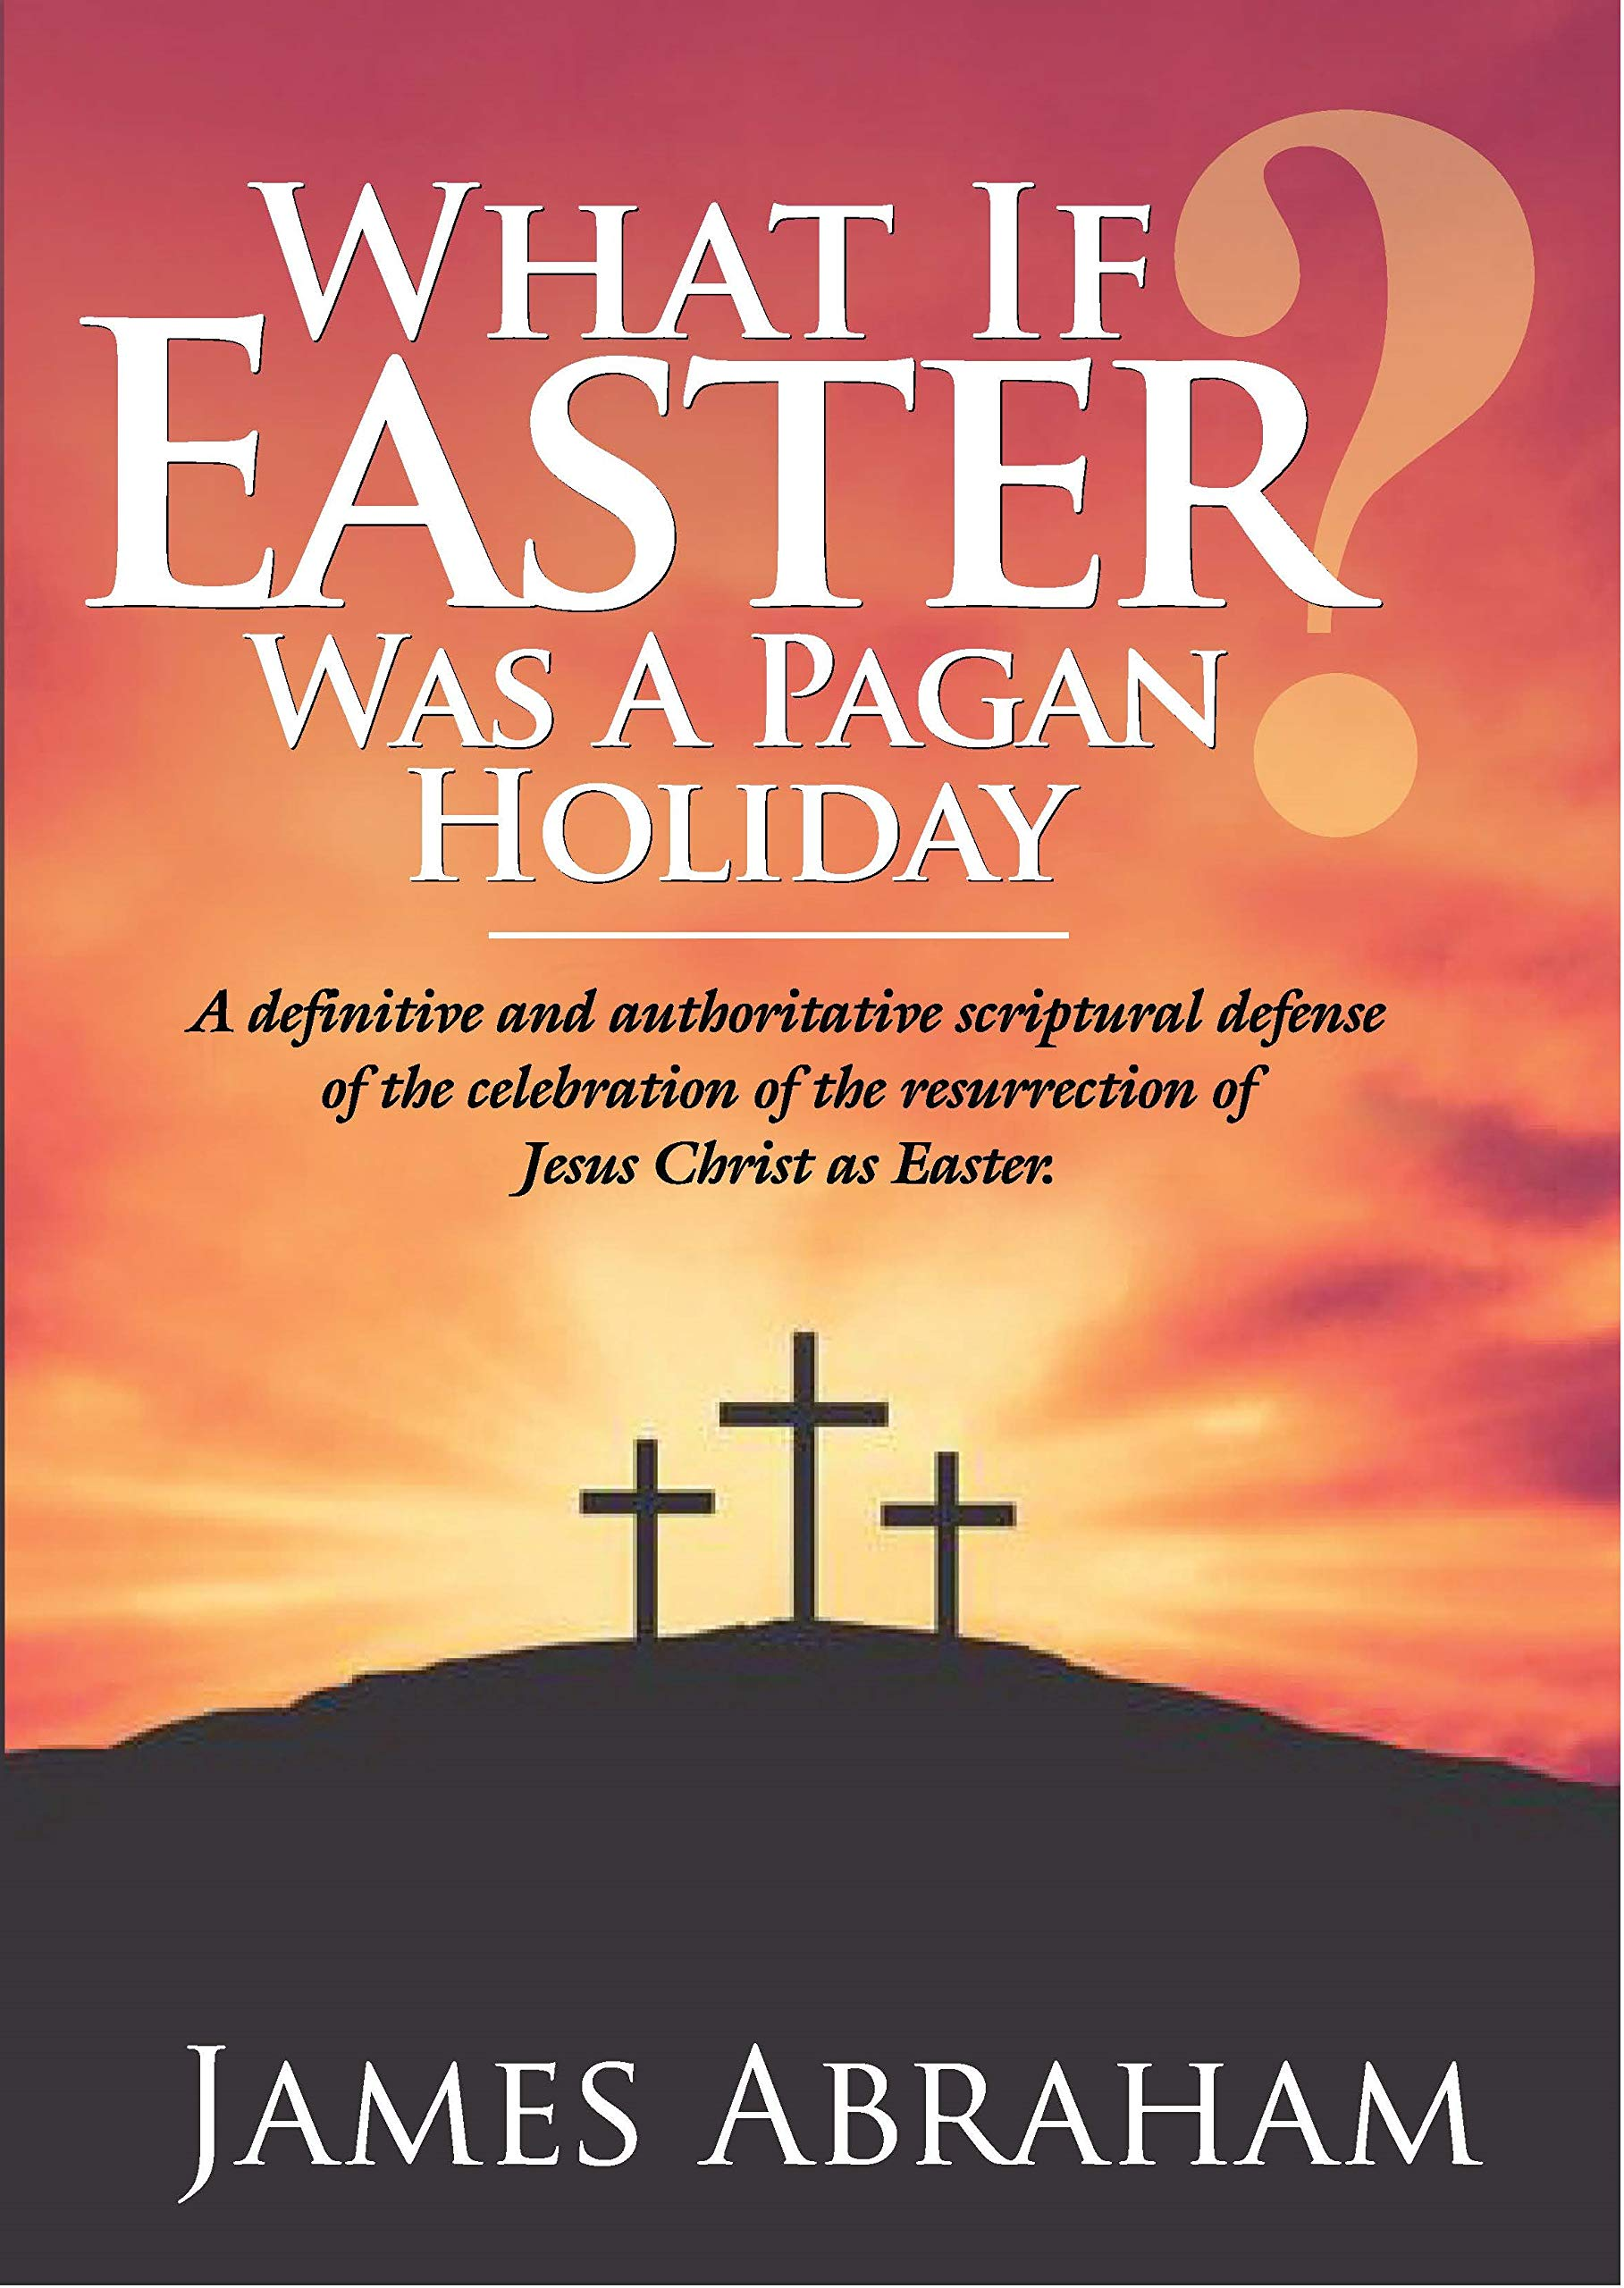 WHAT IF EASTER WAS A PAGAN HOLIDAY?: A definitive and authoritative scriptural defense of the celebration of the resurrection of Jesus Christ as Easter